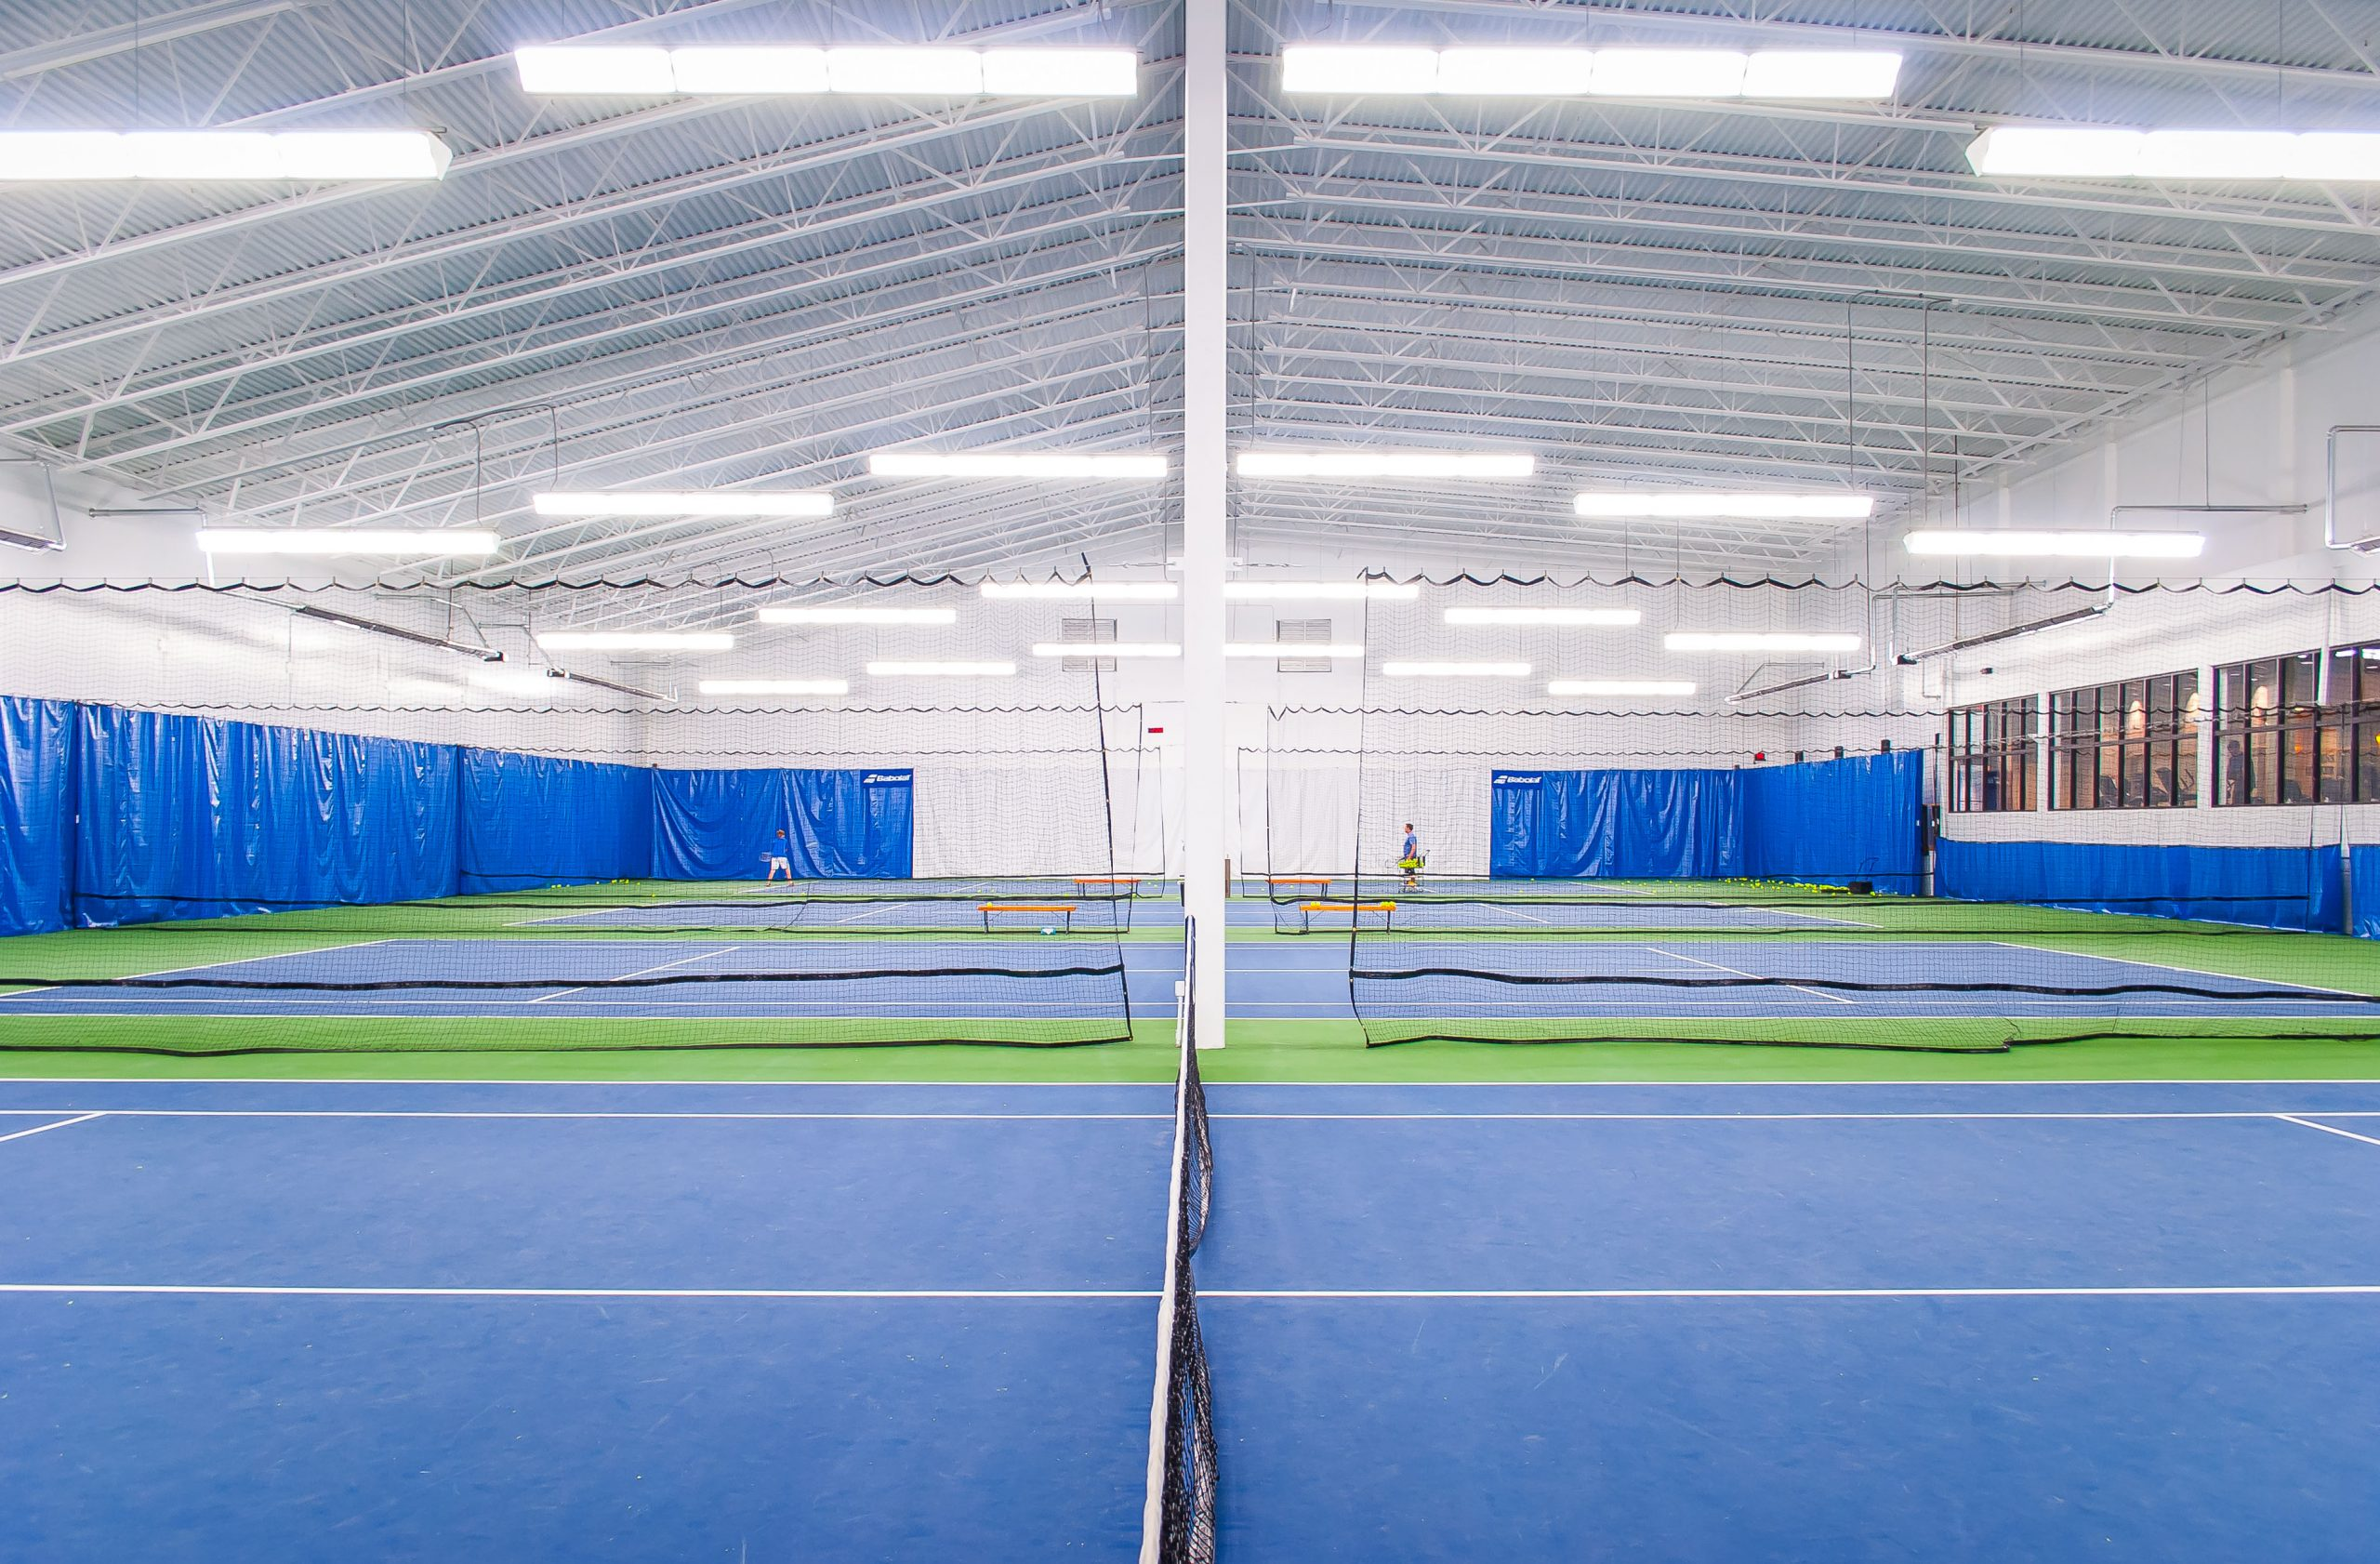 PEAK Health & Wellness Center is a brand new, first-class facility located in Hayden, Idaho.